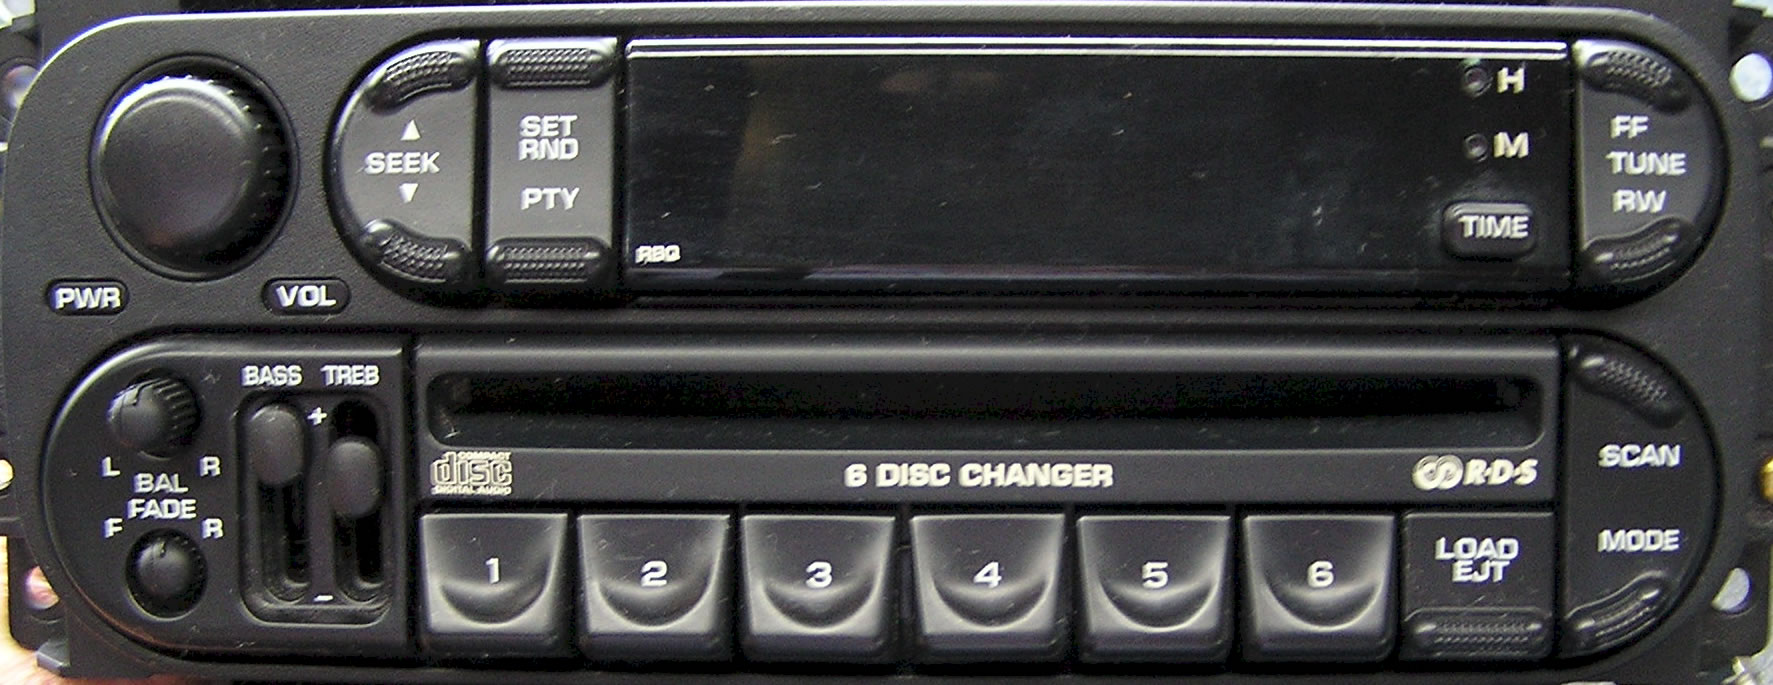 Chrysler / Dodge / Jeep CD player repair - Factory Car Stereo Repair